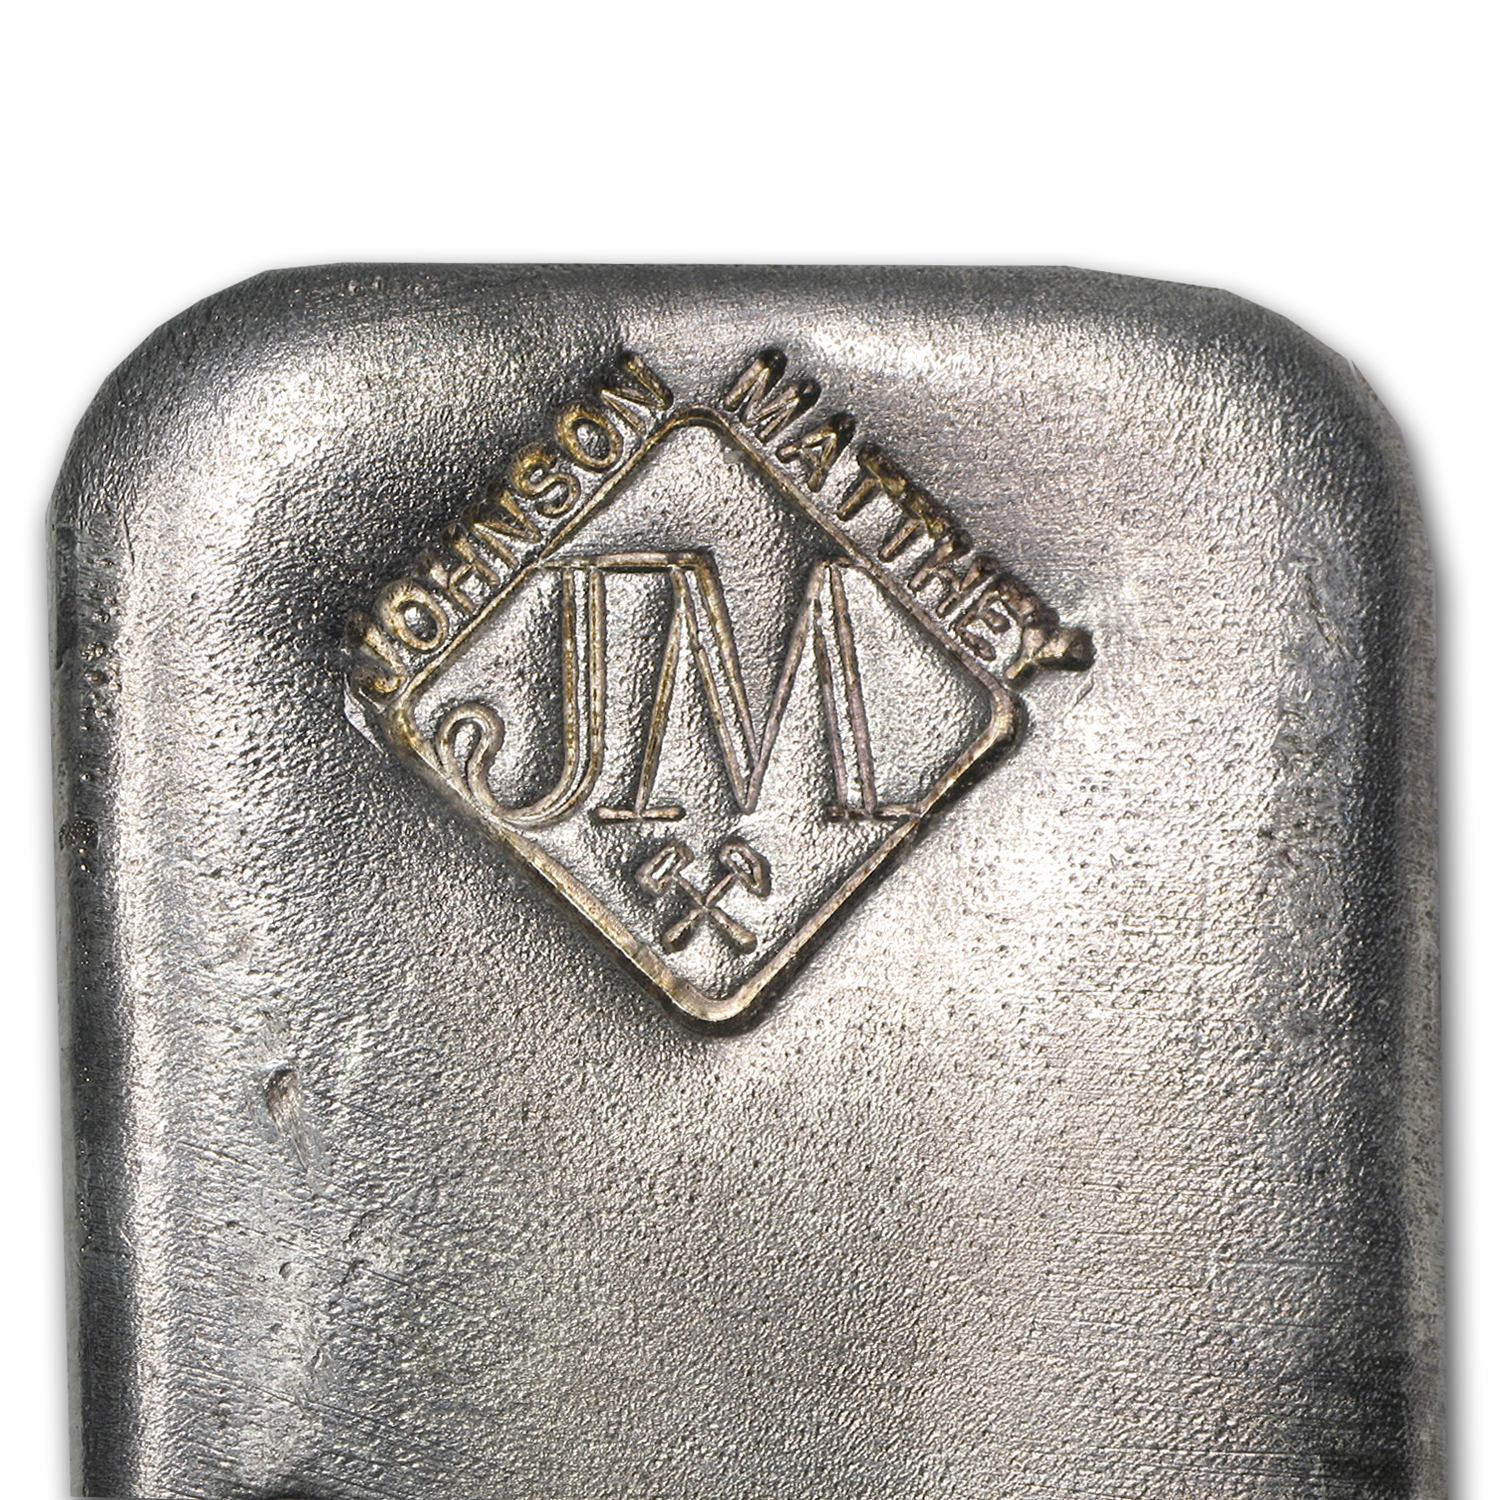 50 oz Silver Bar - Johnson Matthey (Serial #/Canada)